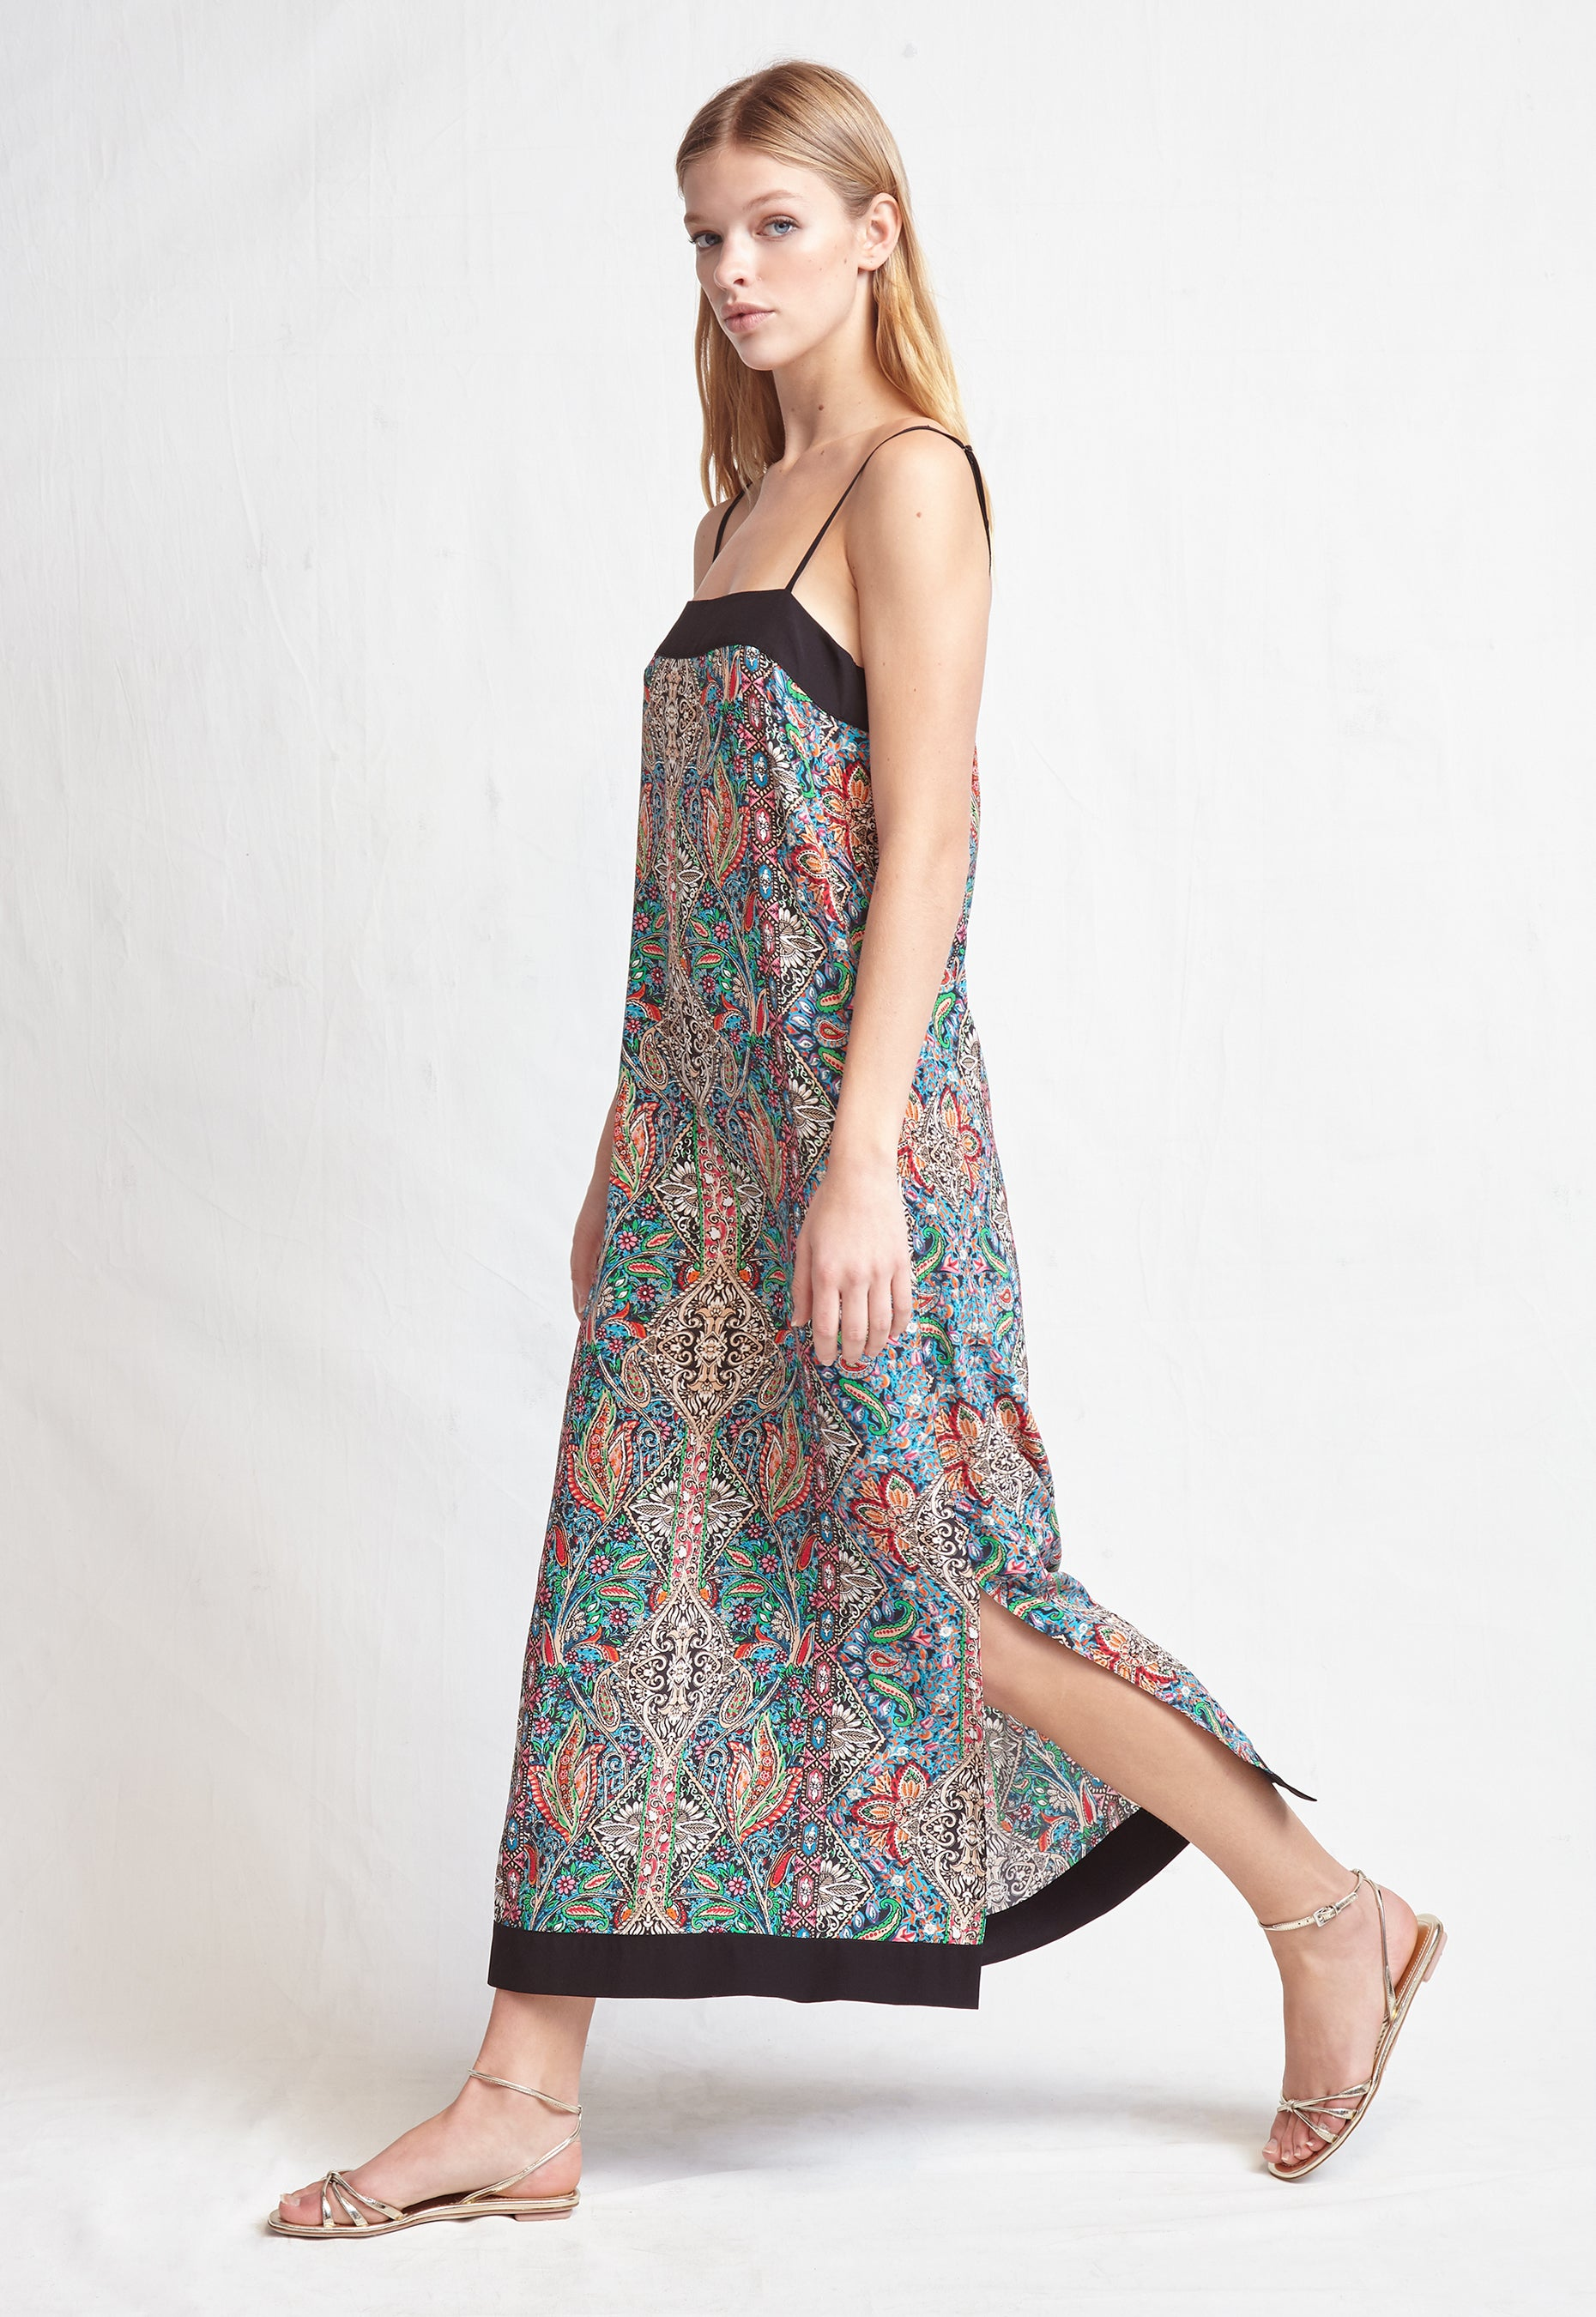 hothouse dress